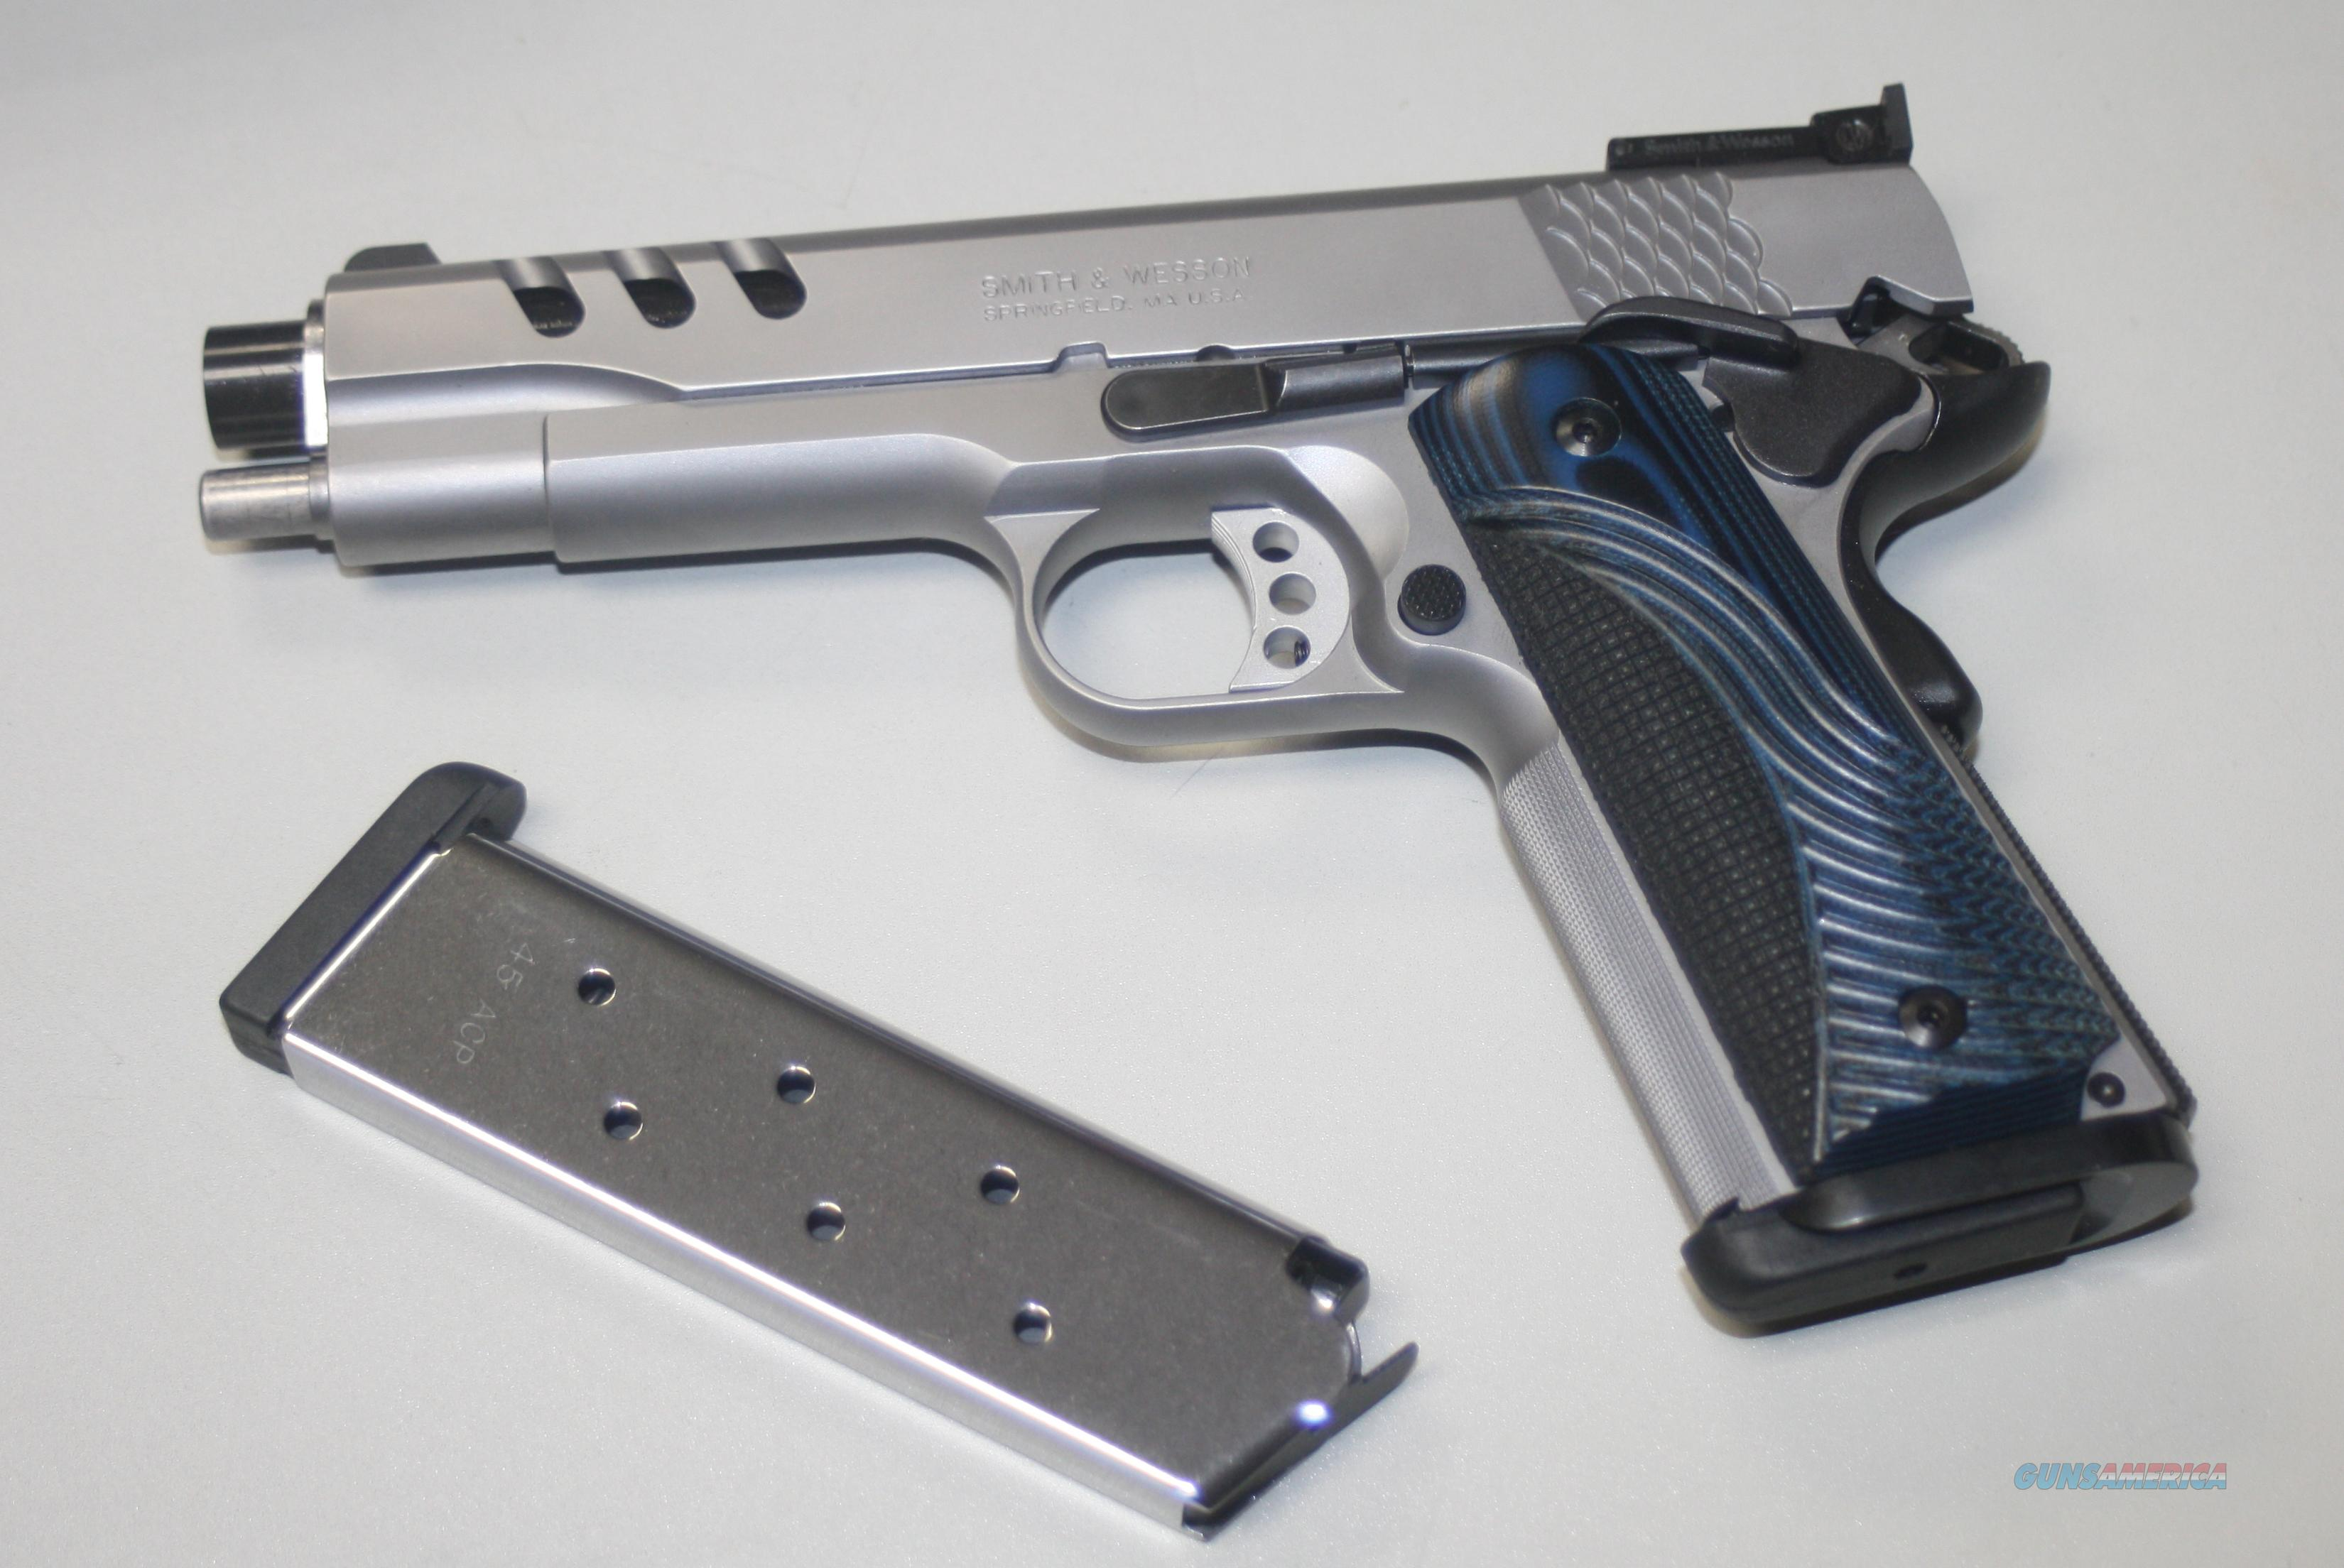 SMITH & WESSON MODEL SW1911  PERFORMANCE CENTER  Guns > Pistols > Smith & Wesson Pistols - Autos > Steel Frame